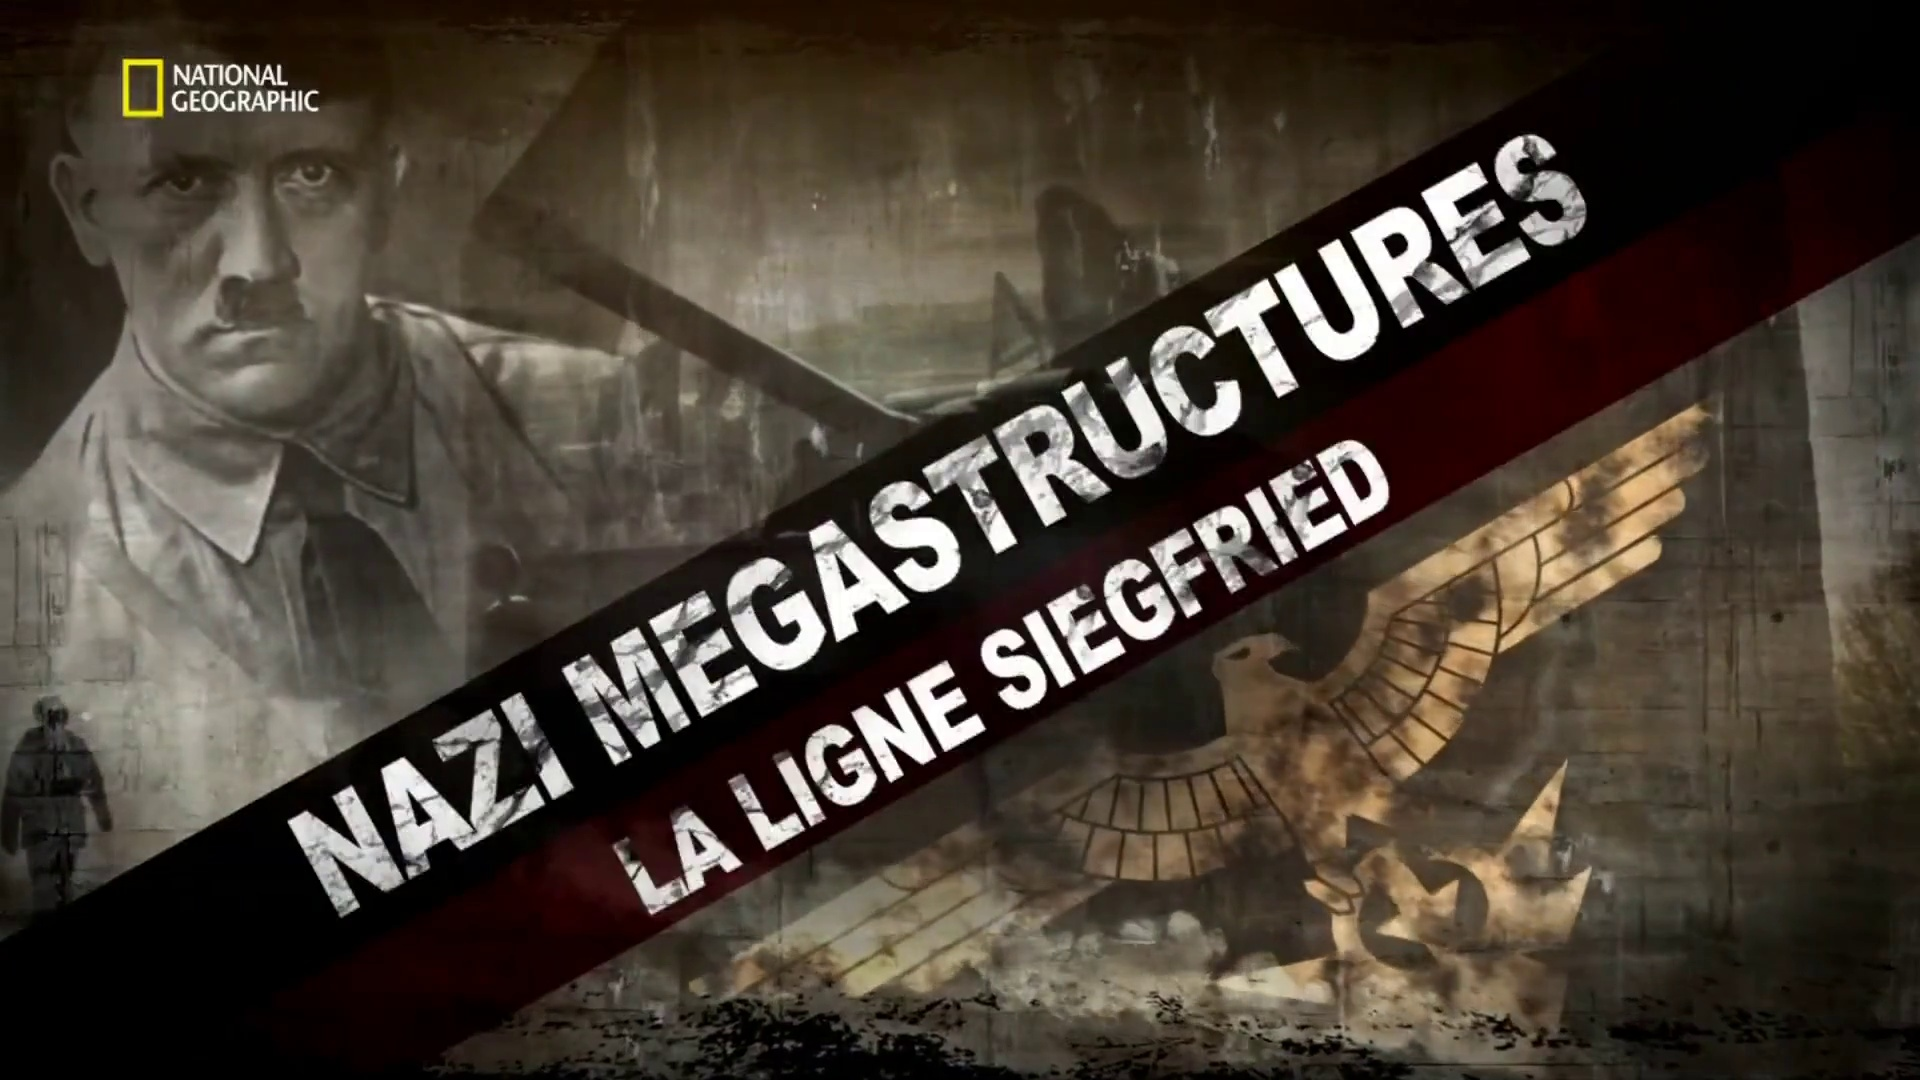 Documentaire La ligne Siegfried